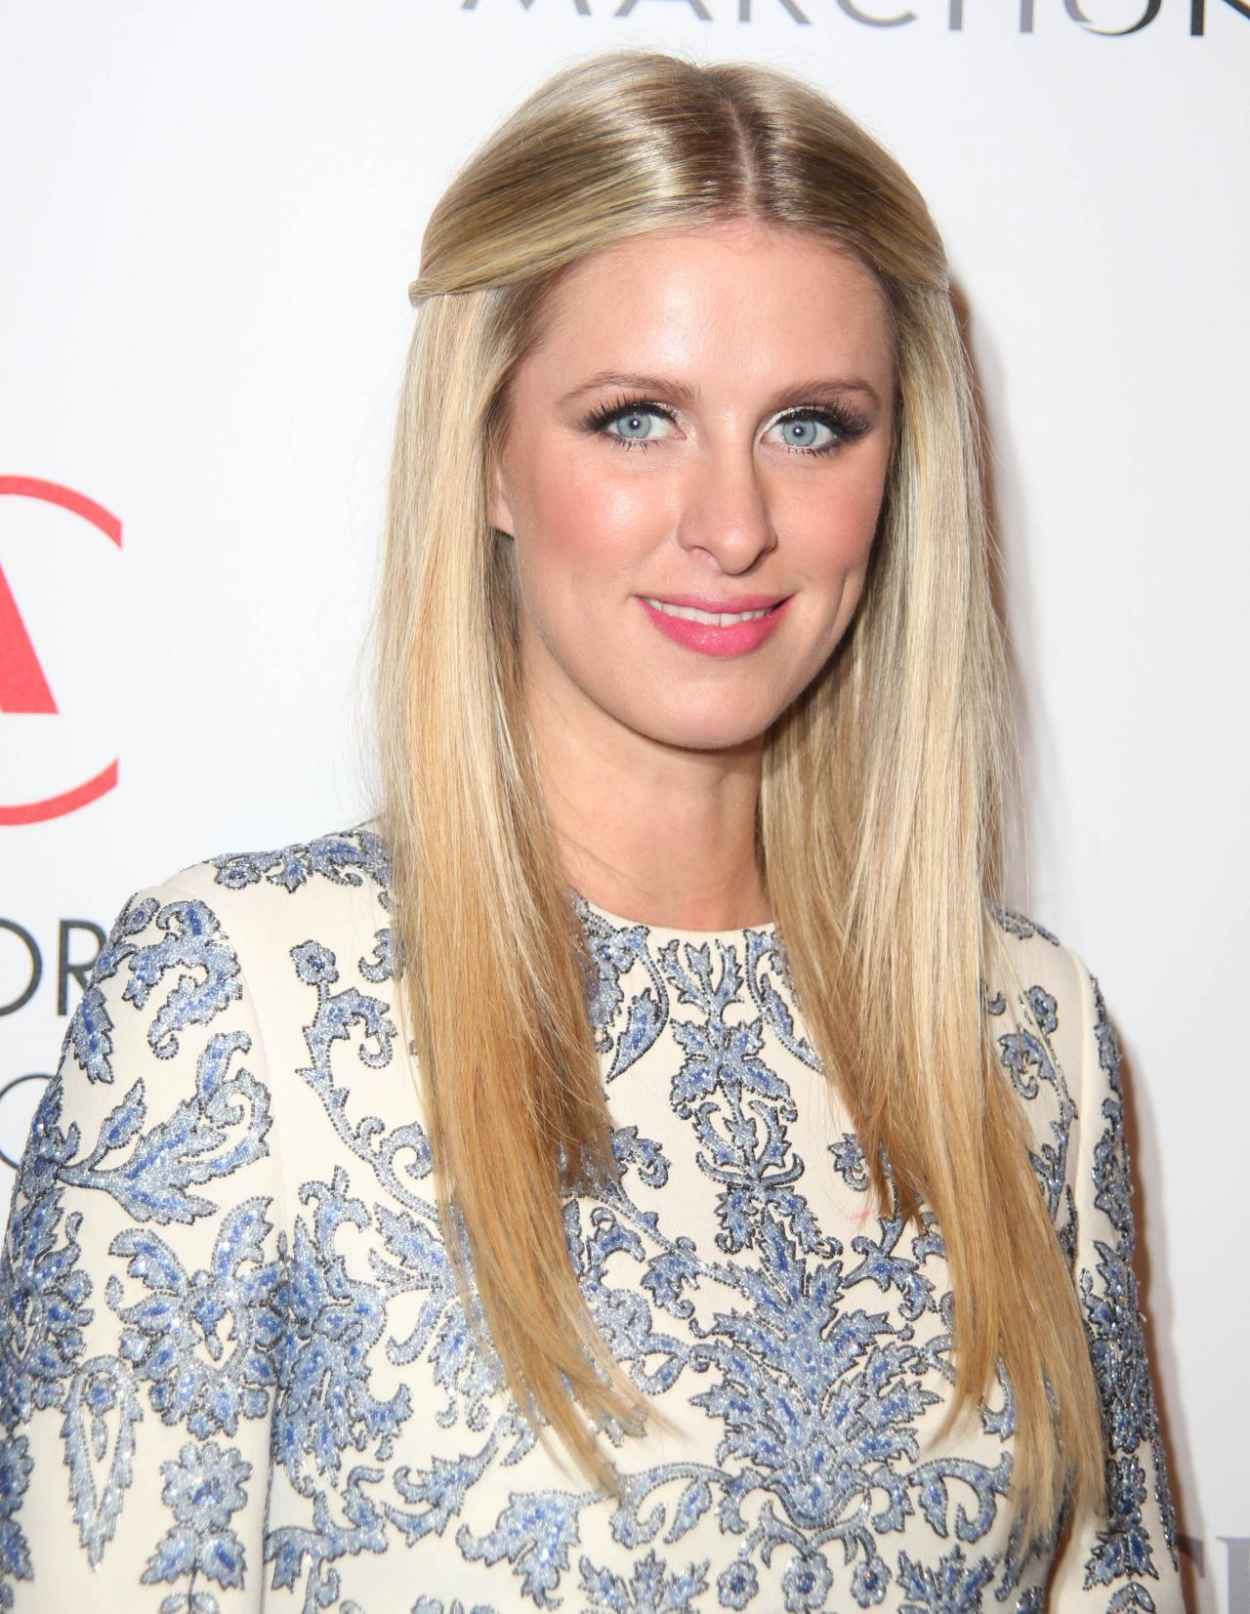 Nicky Hilton at Accessories Council ACE Awards-1